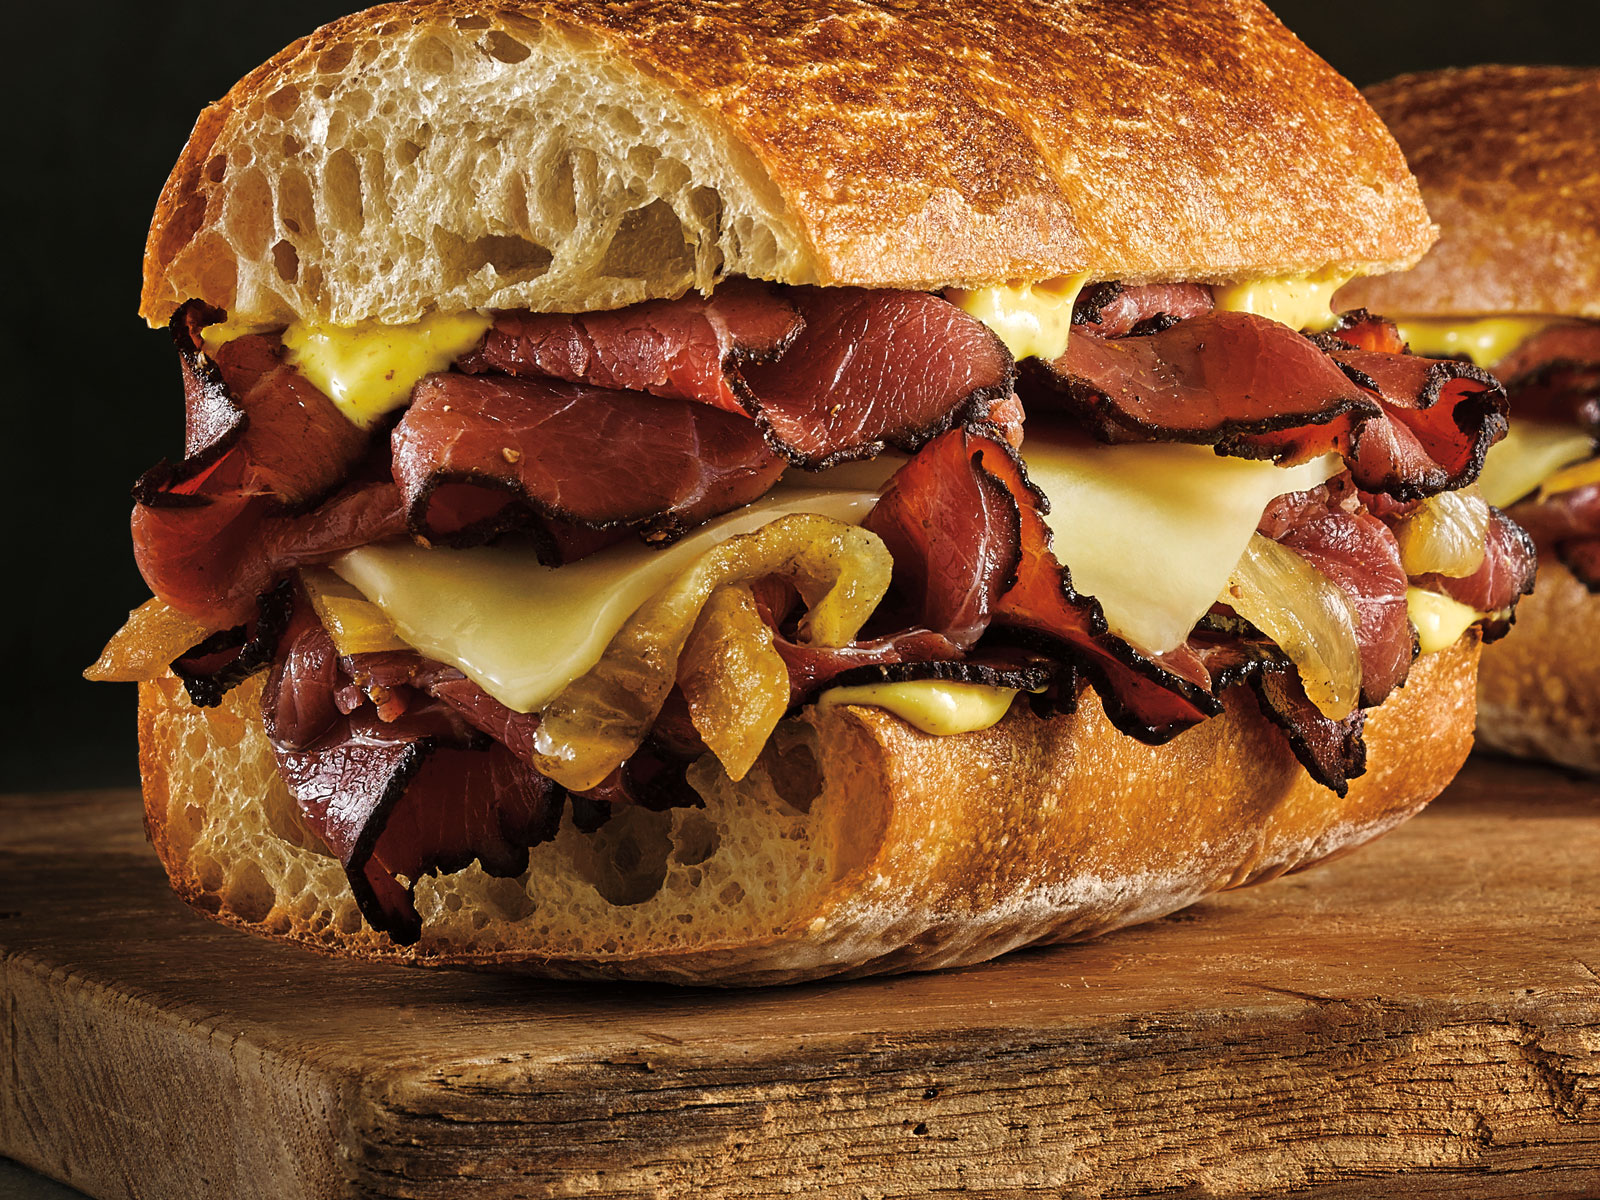 Toasted Pastrami Sandwich